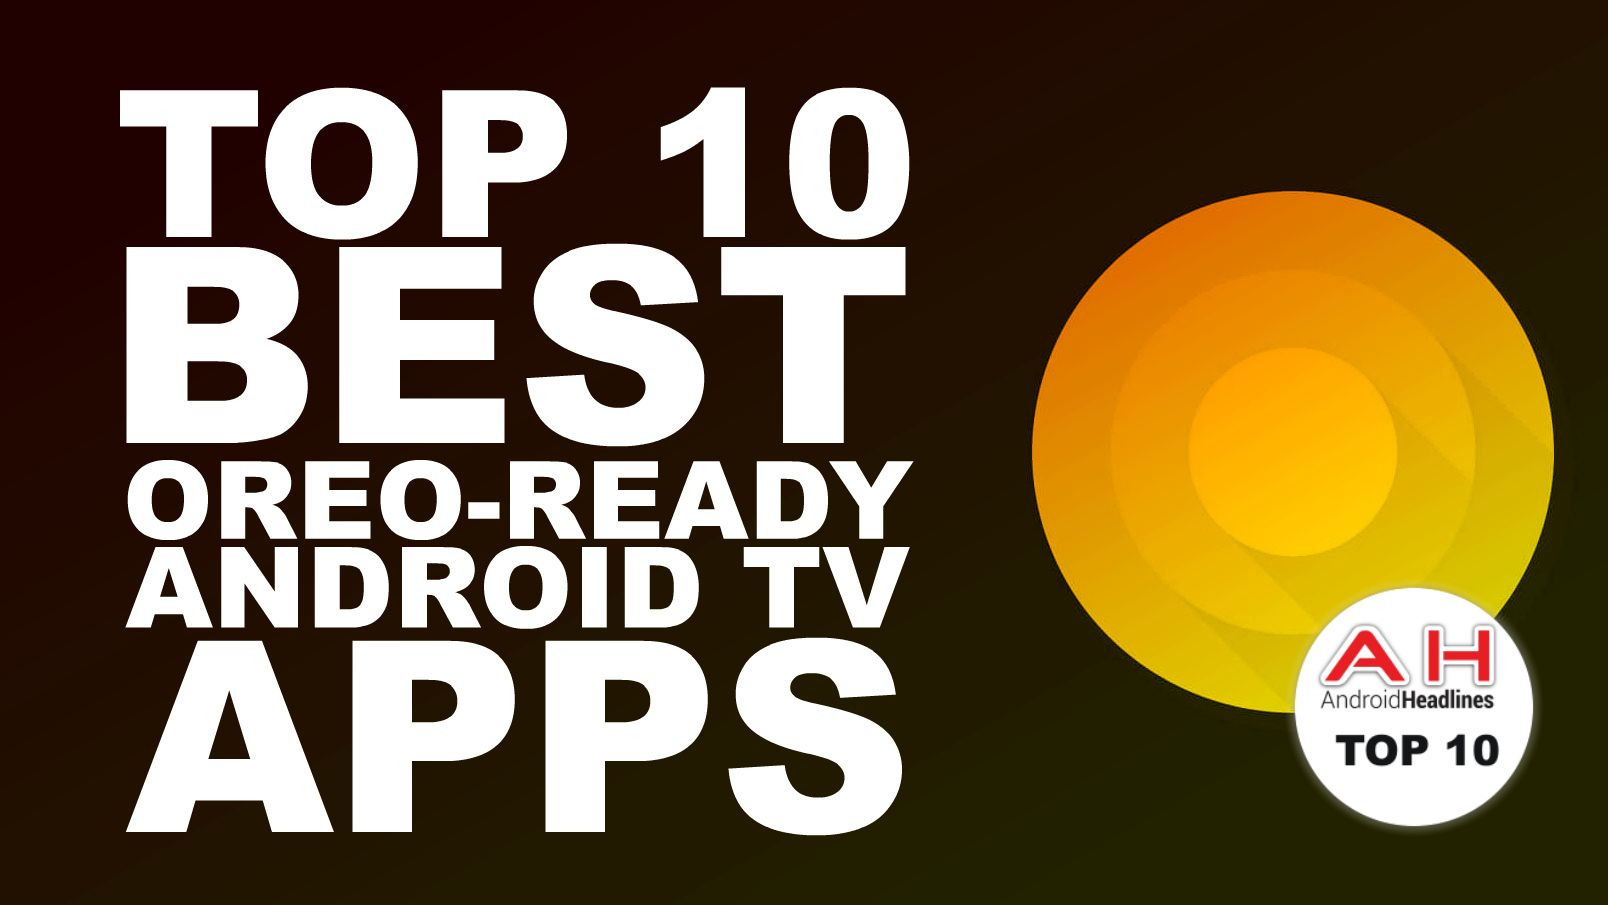 Top 10 Best Android TV Apps — OreoReady — May 2018